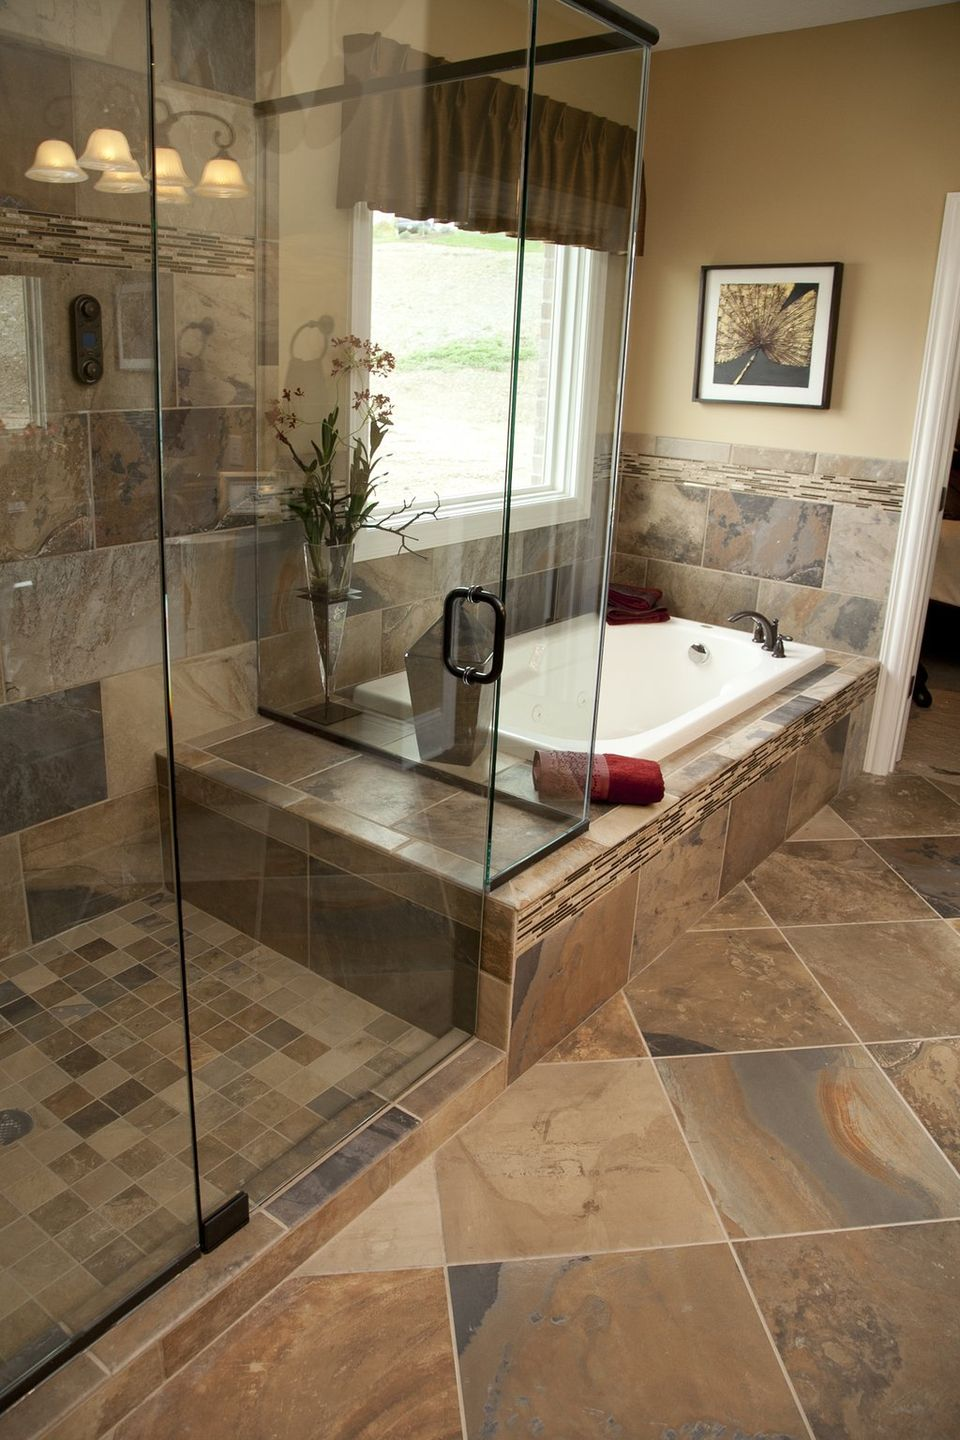 33 stunning pictures and ideas of natural stone bathroom for Tile designs in bathroom